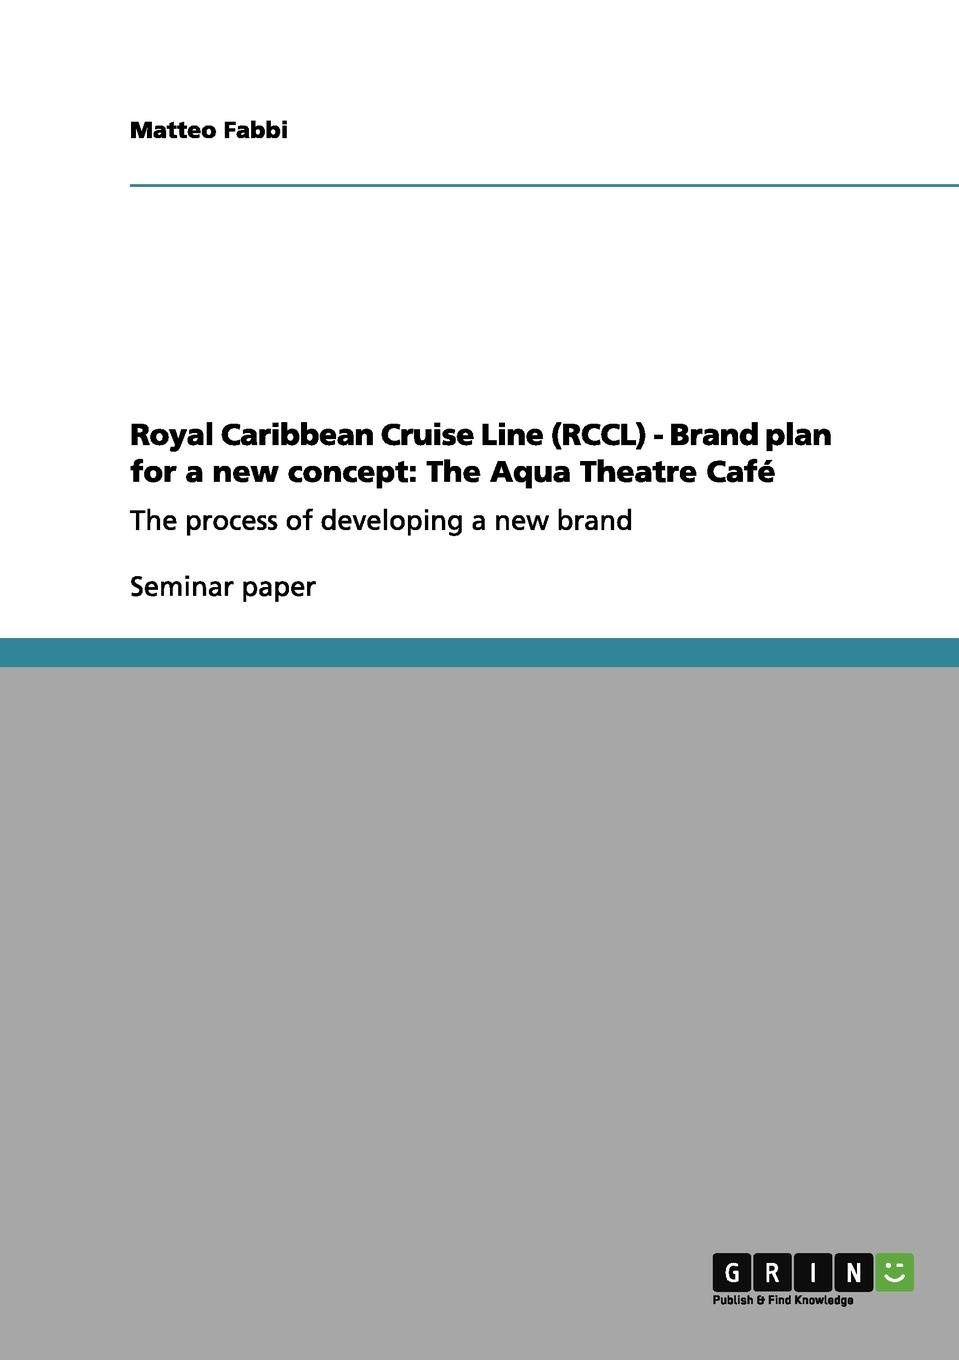 Matteo Fabbi Royal Caribbean Cruise Line (RCCL) - Brand plan for a new concept. The Aqua Theatre Cafe brand new e3z d81 with free dhl